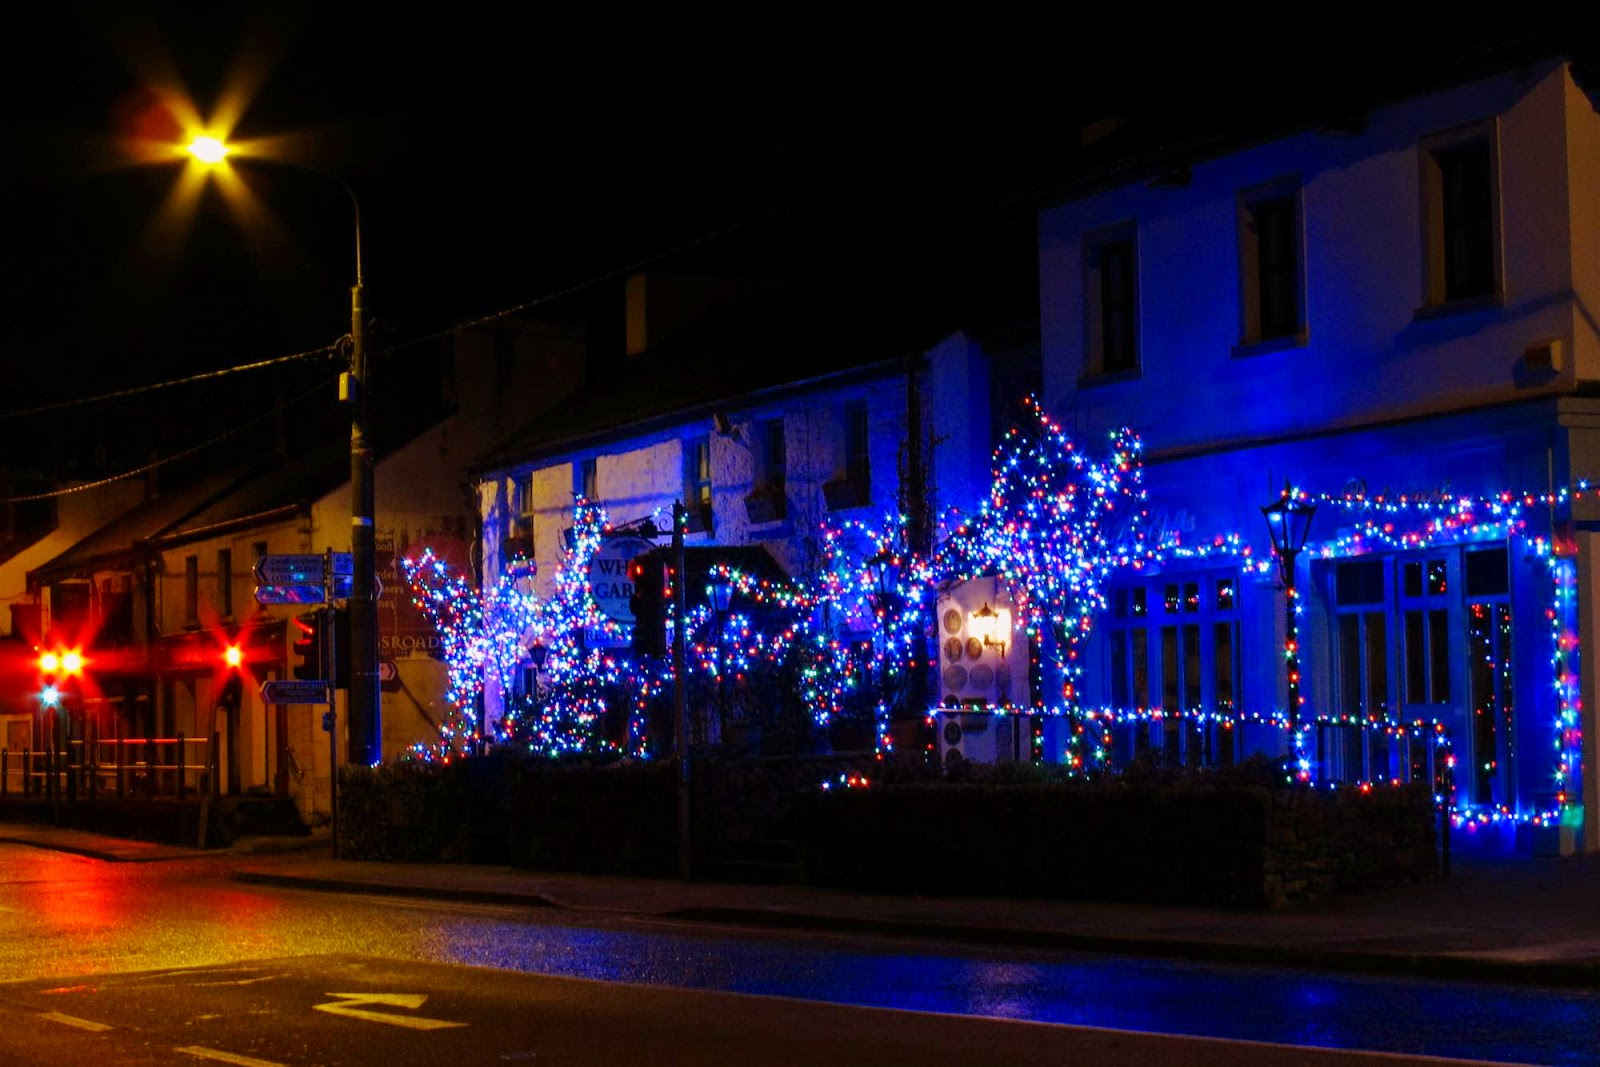 Christmas lights decorations at the White gables in Moycullen